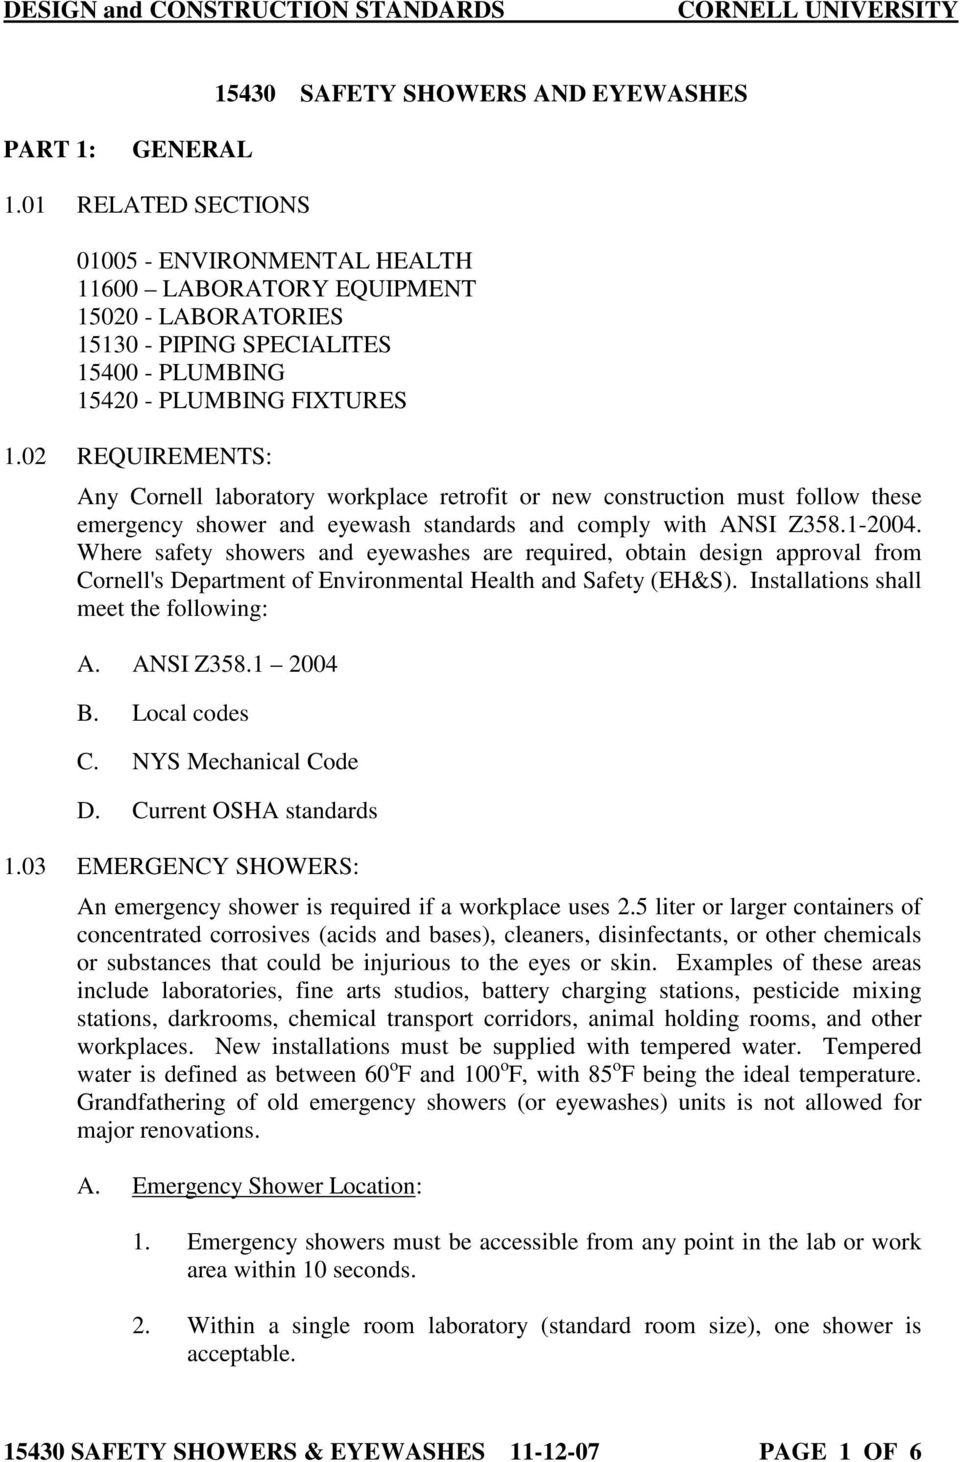 02 REQUIREMENTS: Any Cornell laboratory workplace retrofit or new construction must follow these emergency shower and eyewash standards and comply with ANSI Z358.1-2004.